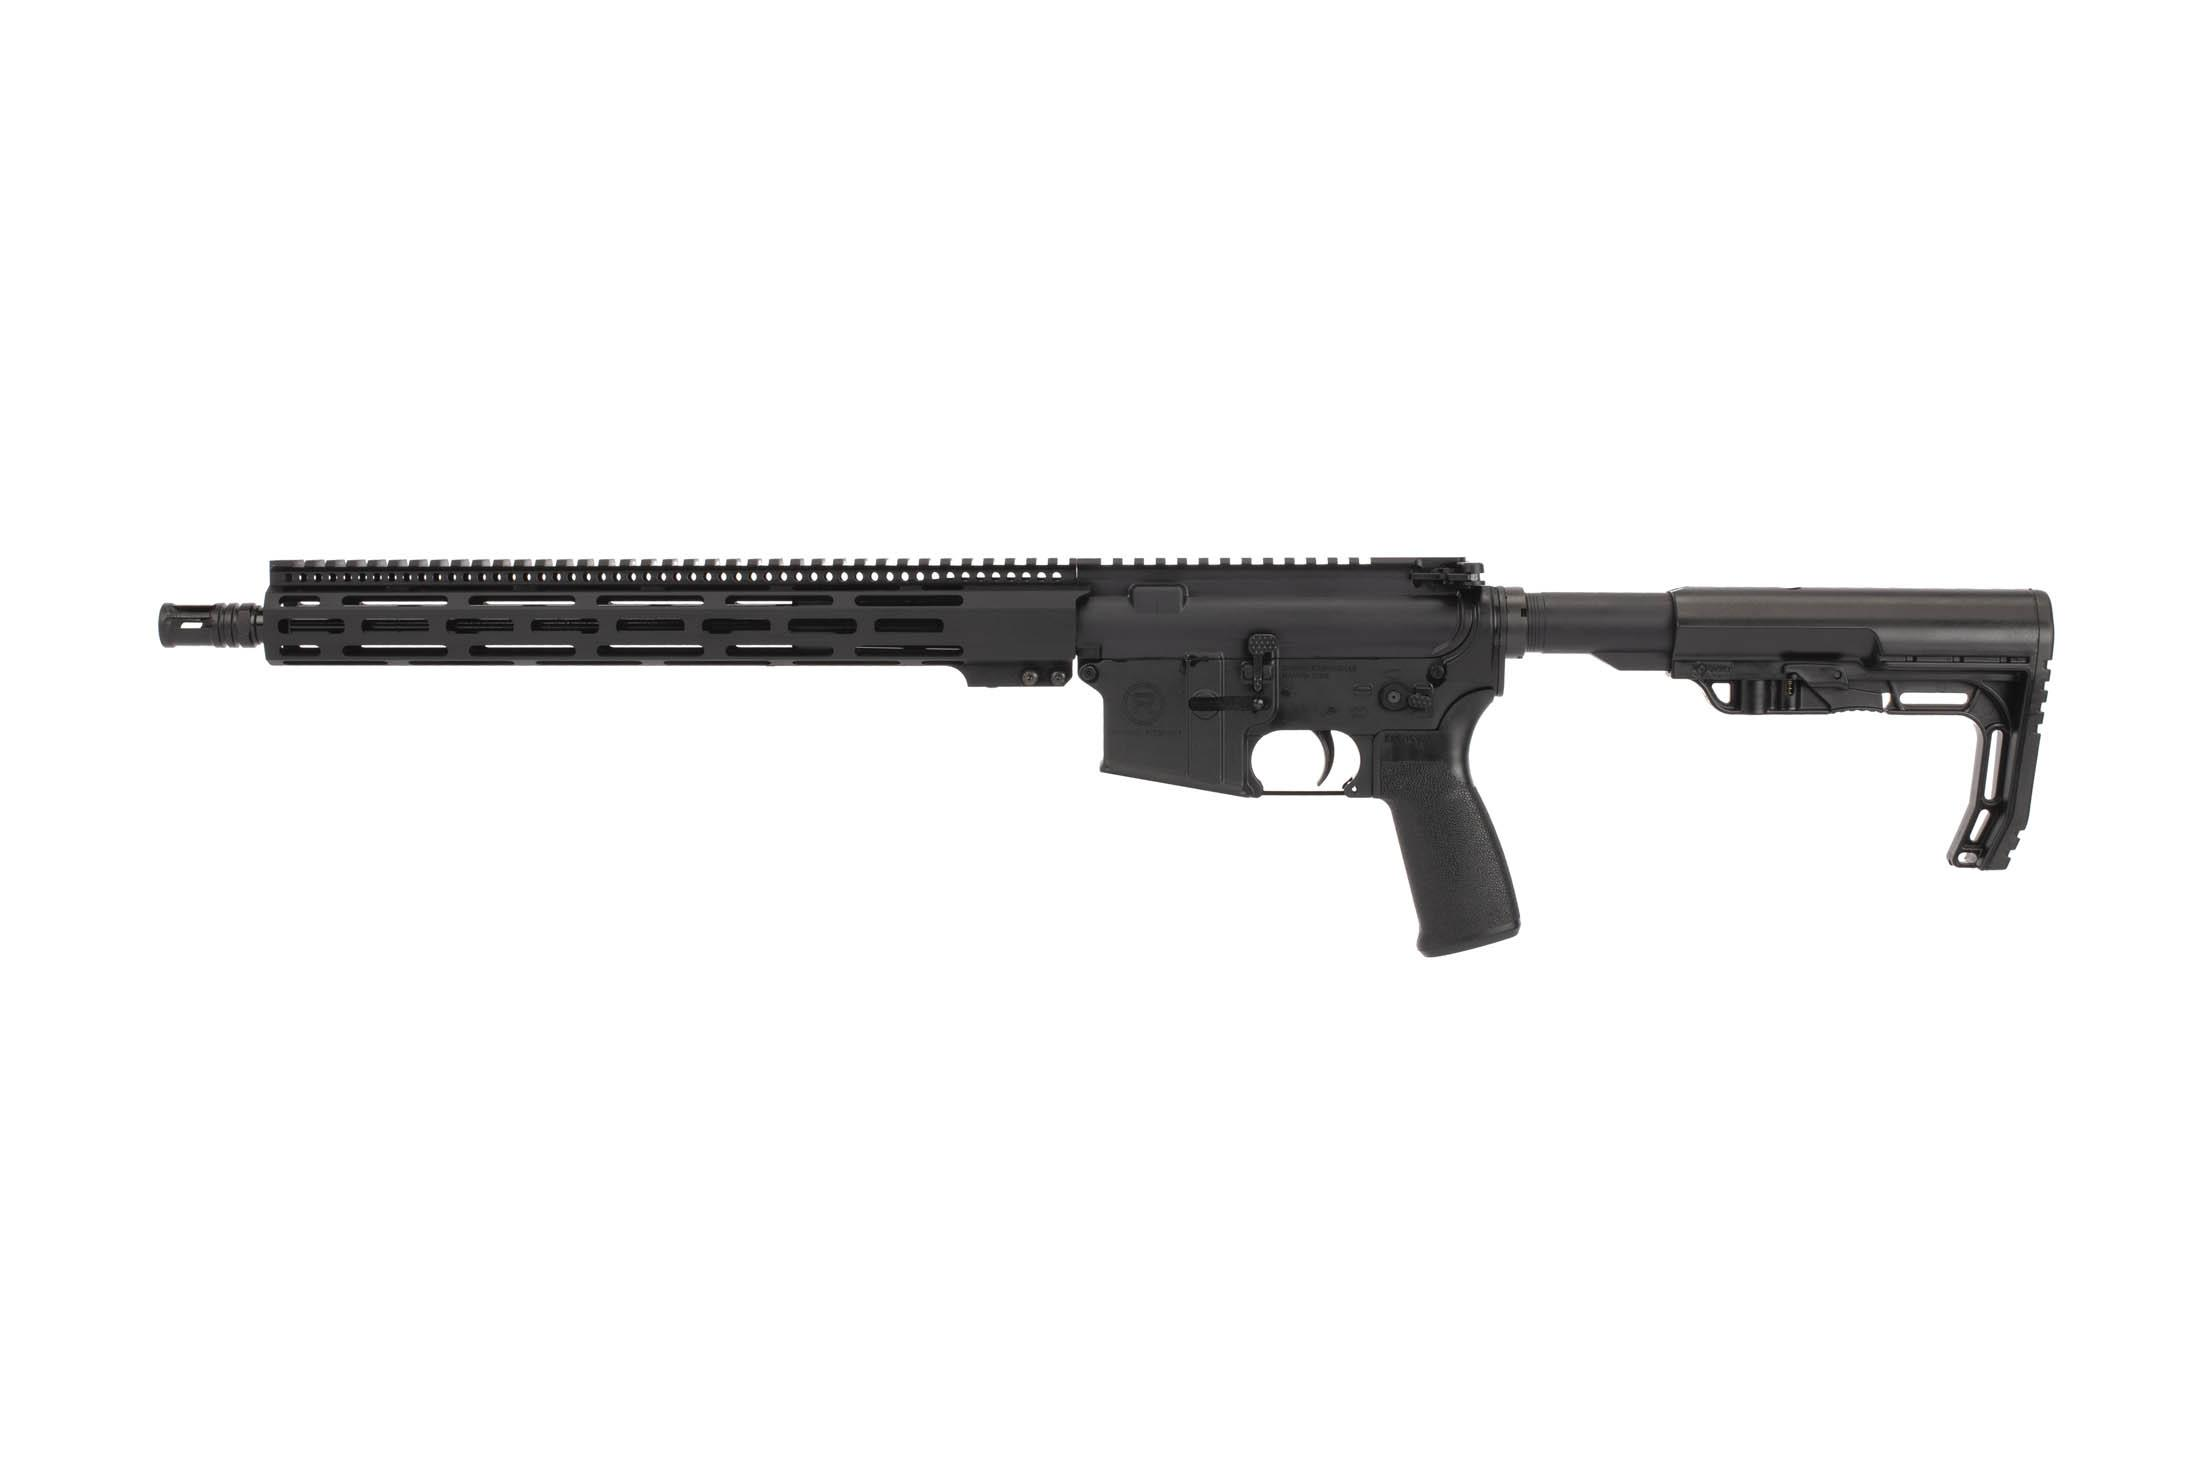 Radical Firearsm 300 BLK 16in AR-15 is equipped with a new 3rd gen M-LOK rail with improved mounting system.